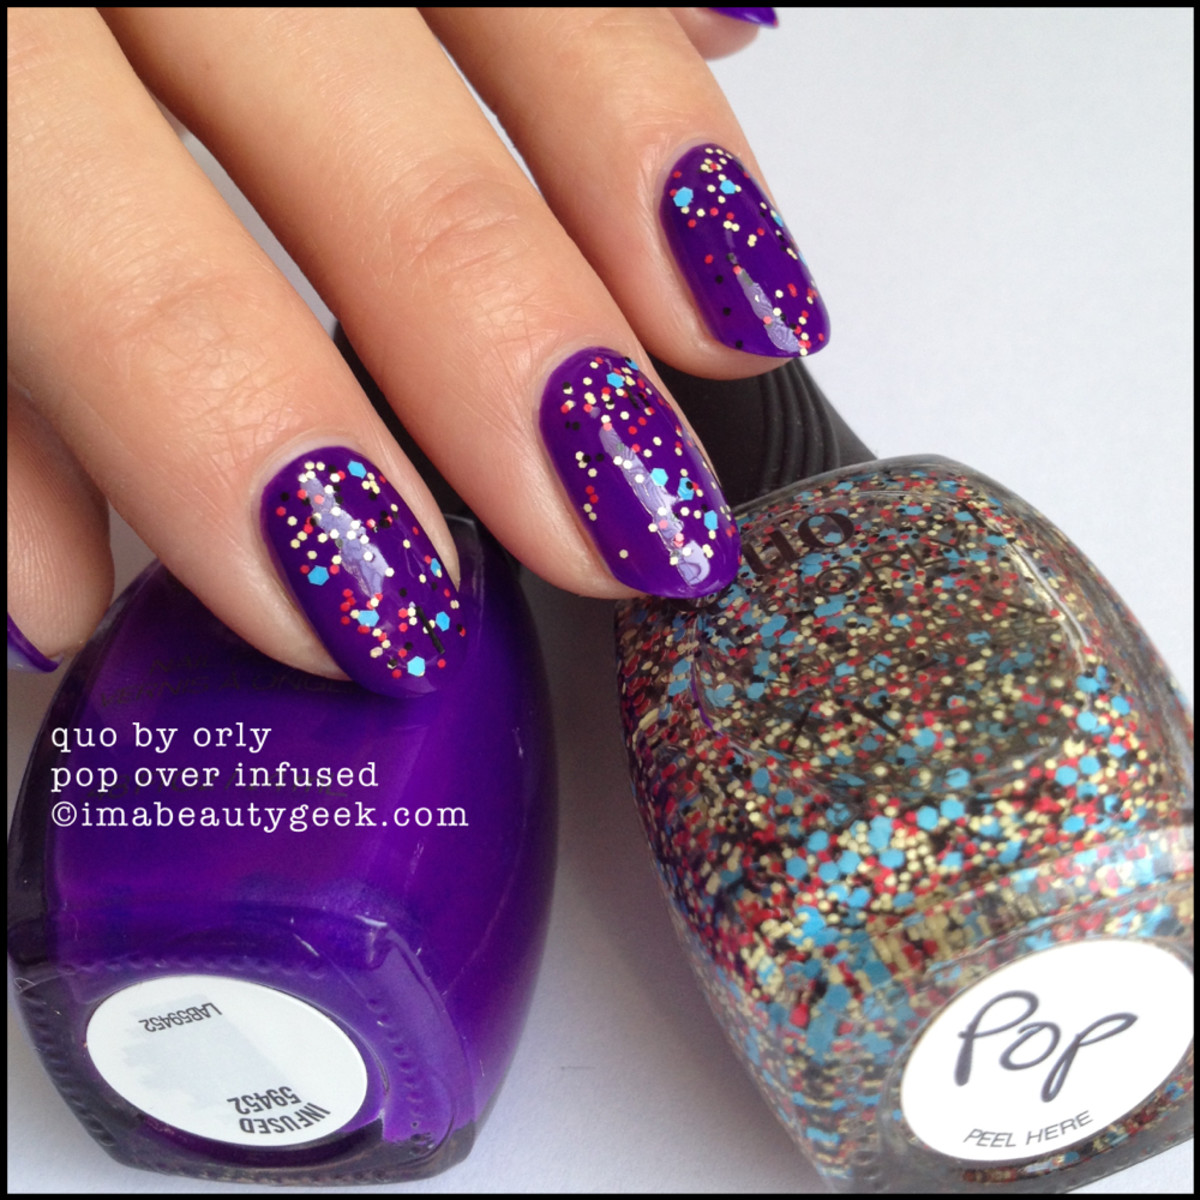 Quo by Orly Pop over Infused